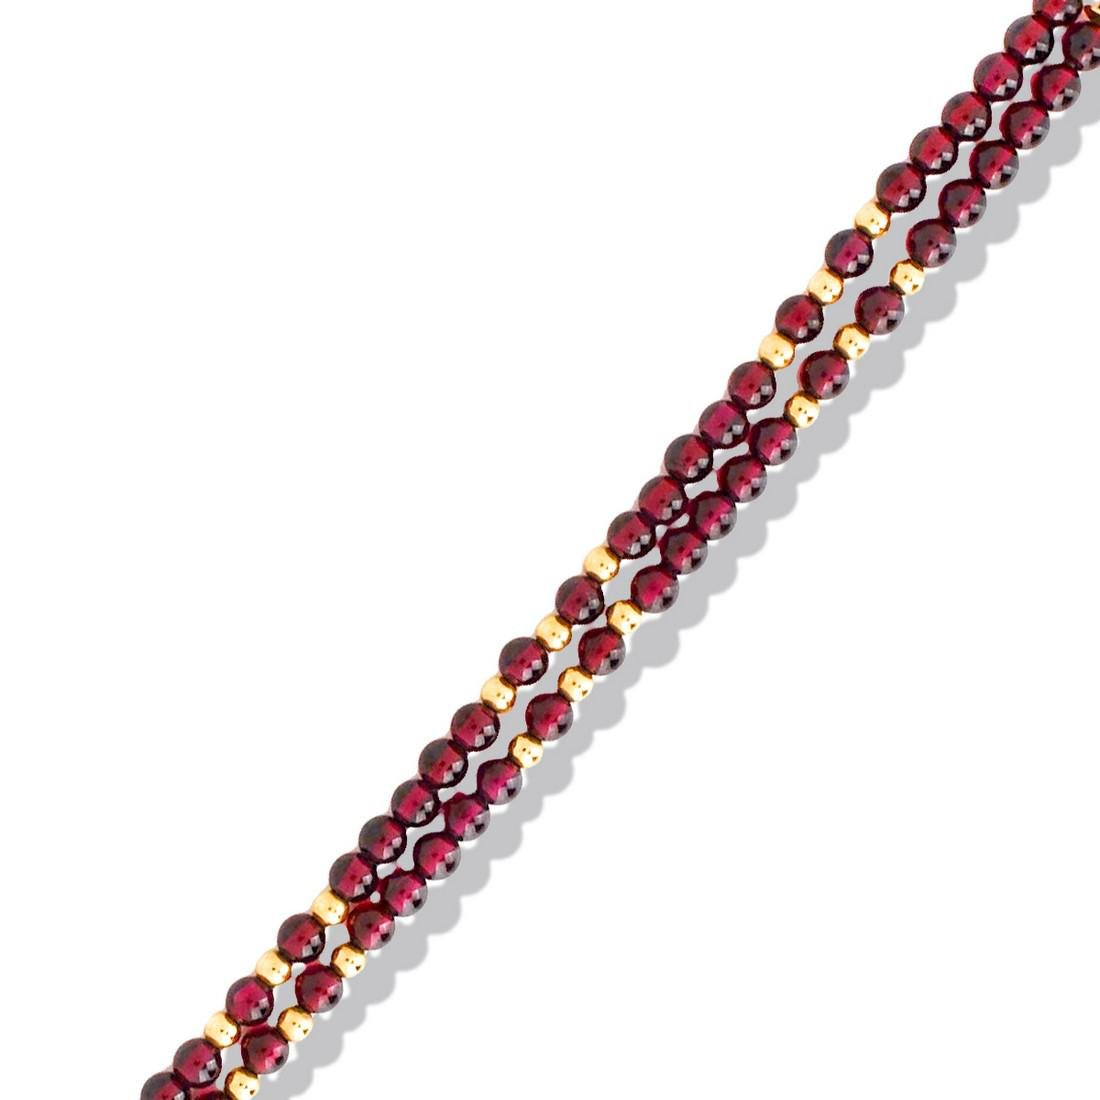 Retro, 2 Strand Garnet and Gold Tone Bead Bracelet